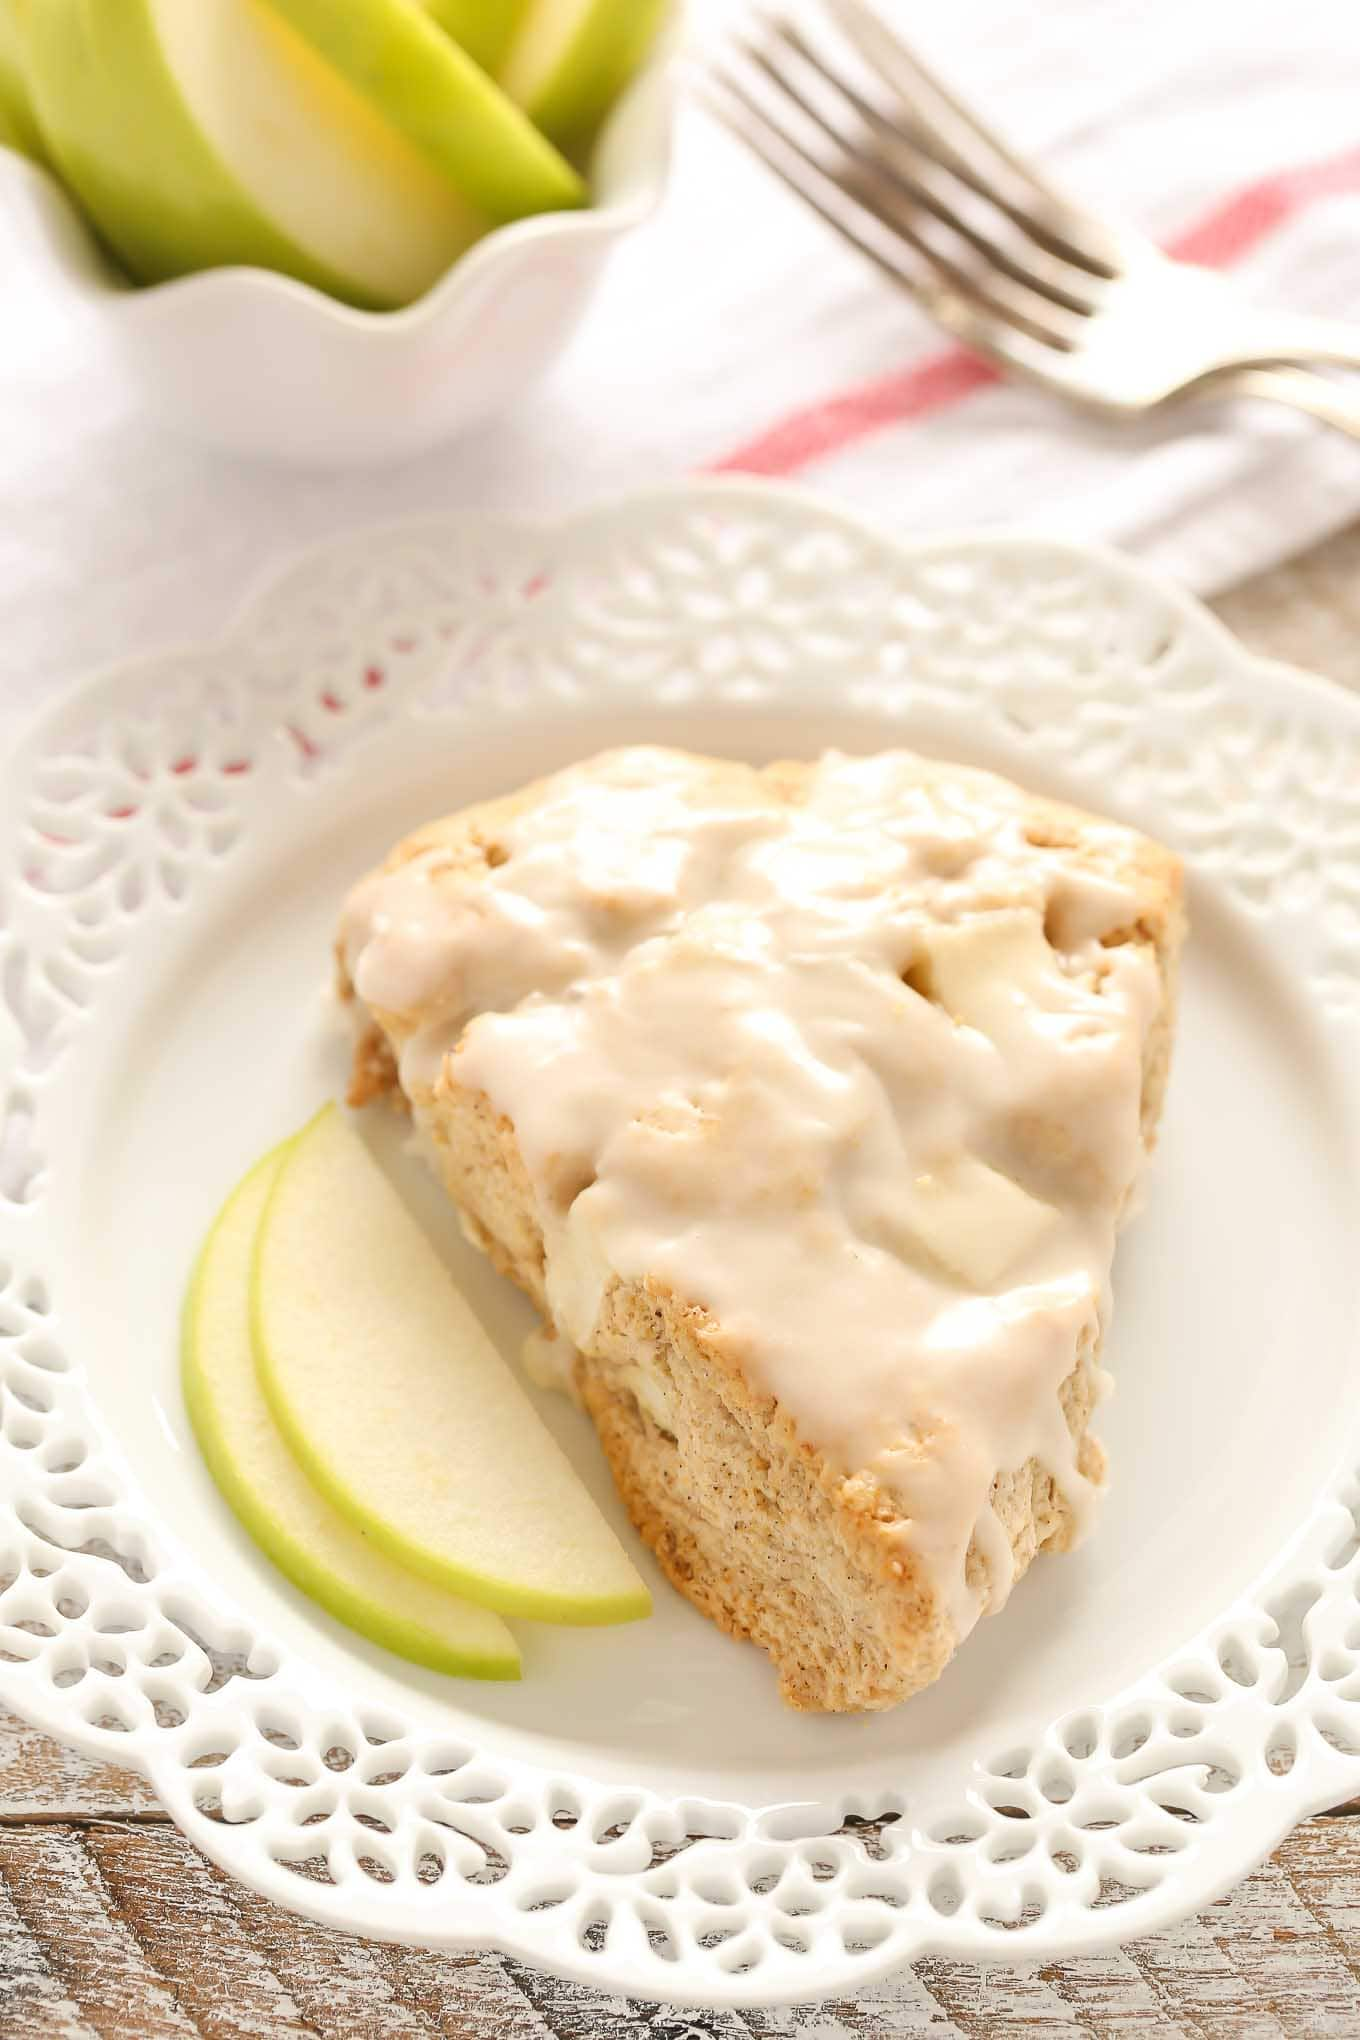 These Apple Cinnamon Scones are filled with chopped apple, spices, and incredibly soft and tender. The perfect treat for breakfast or brunch!